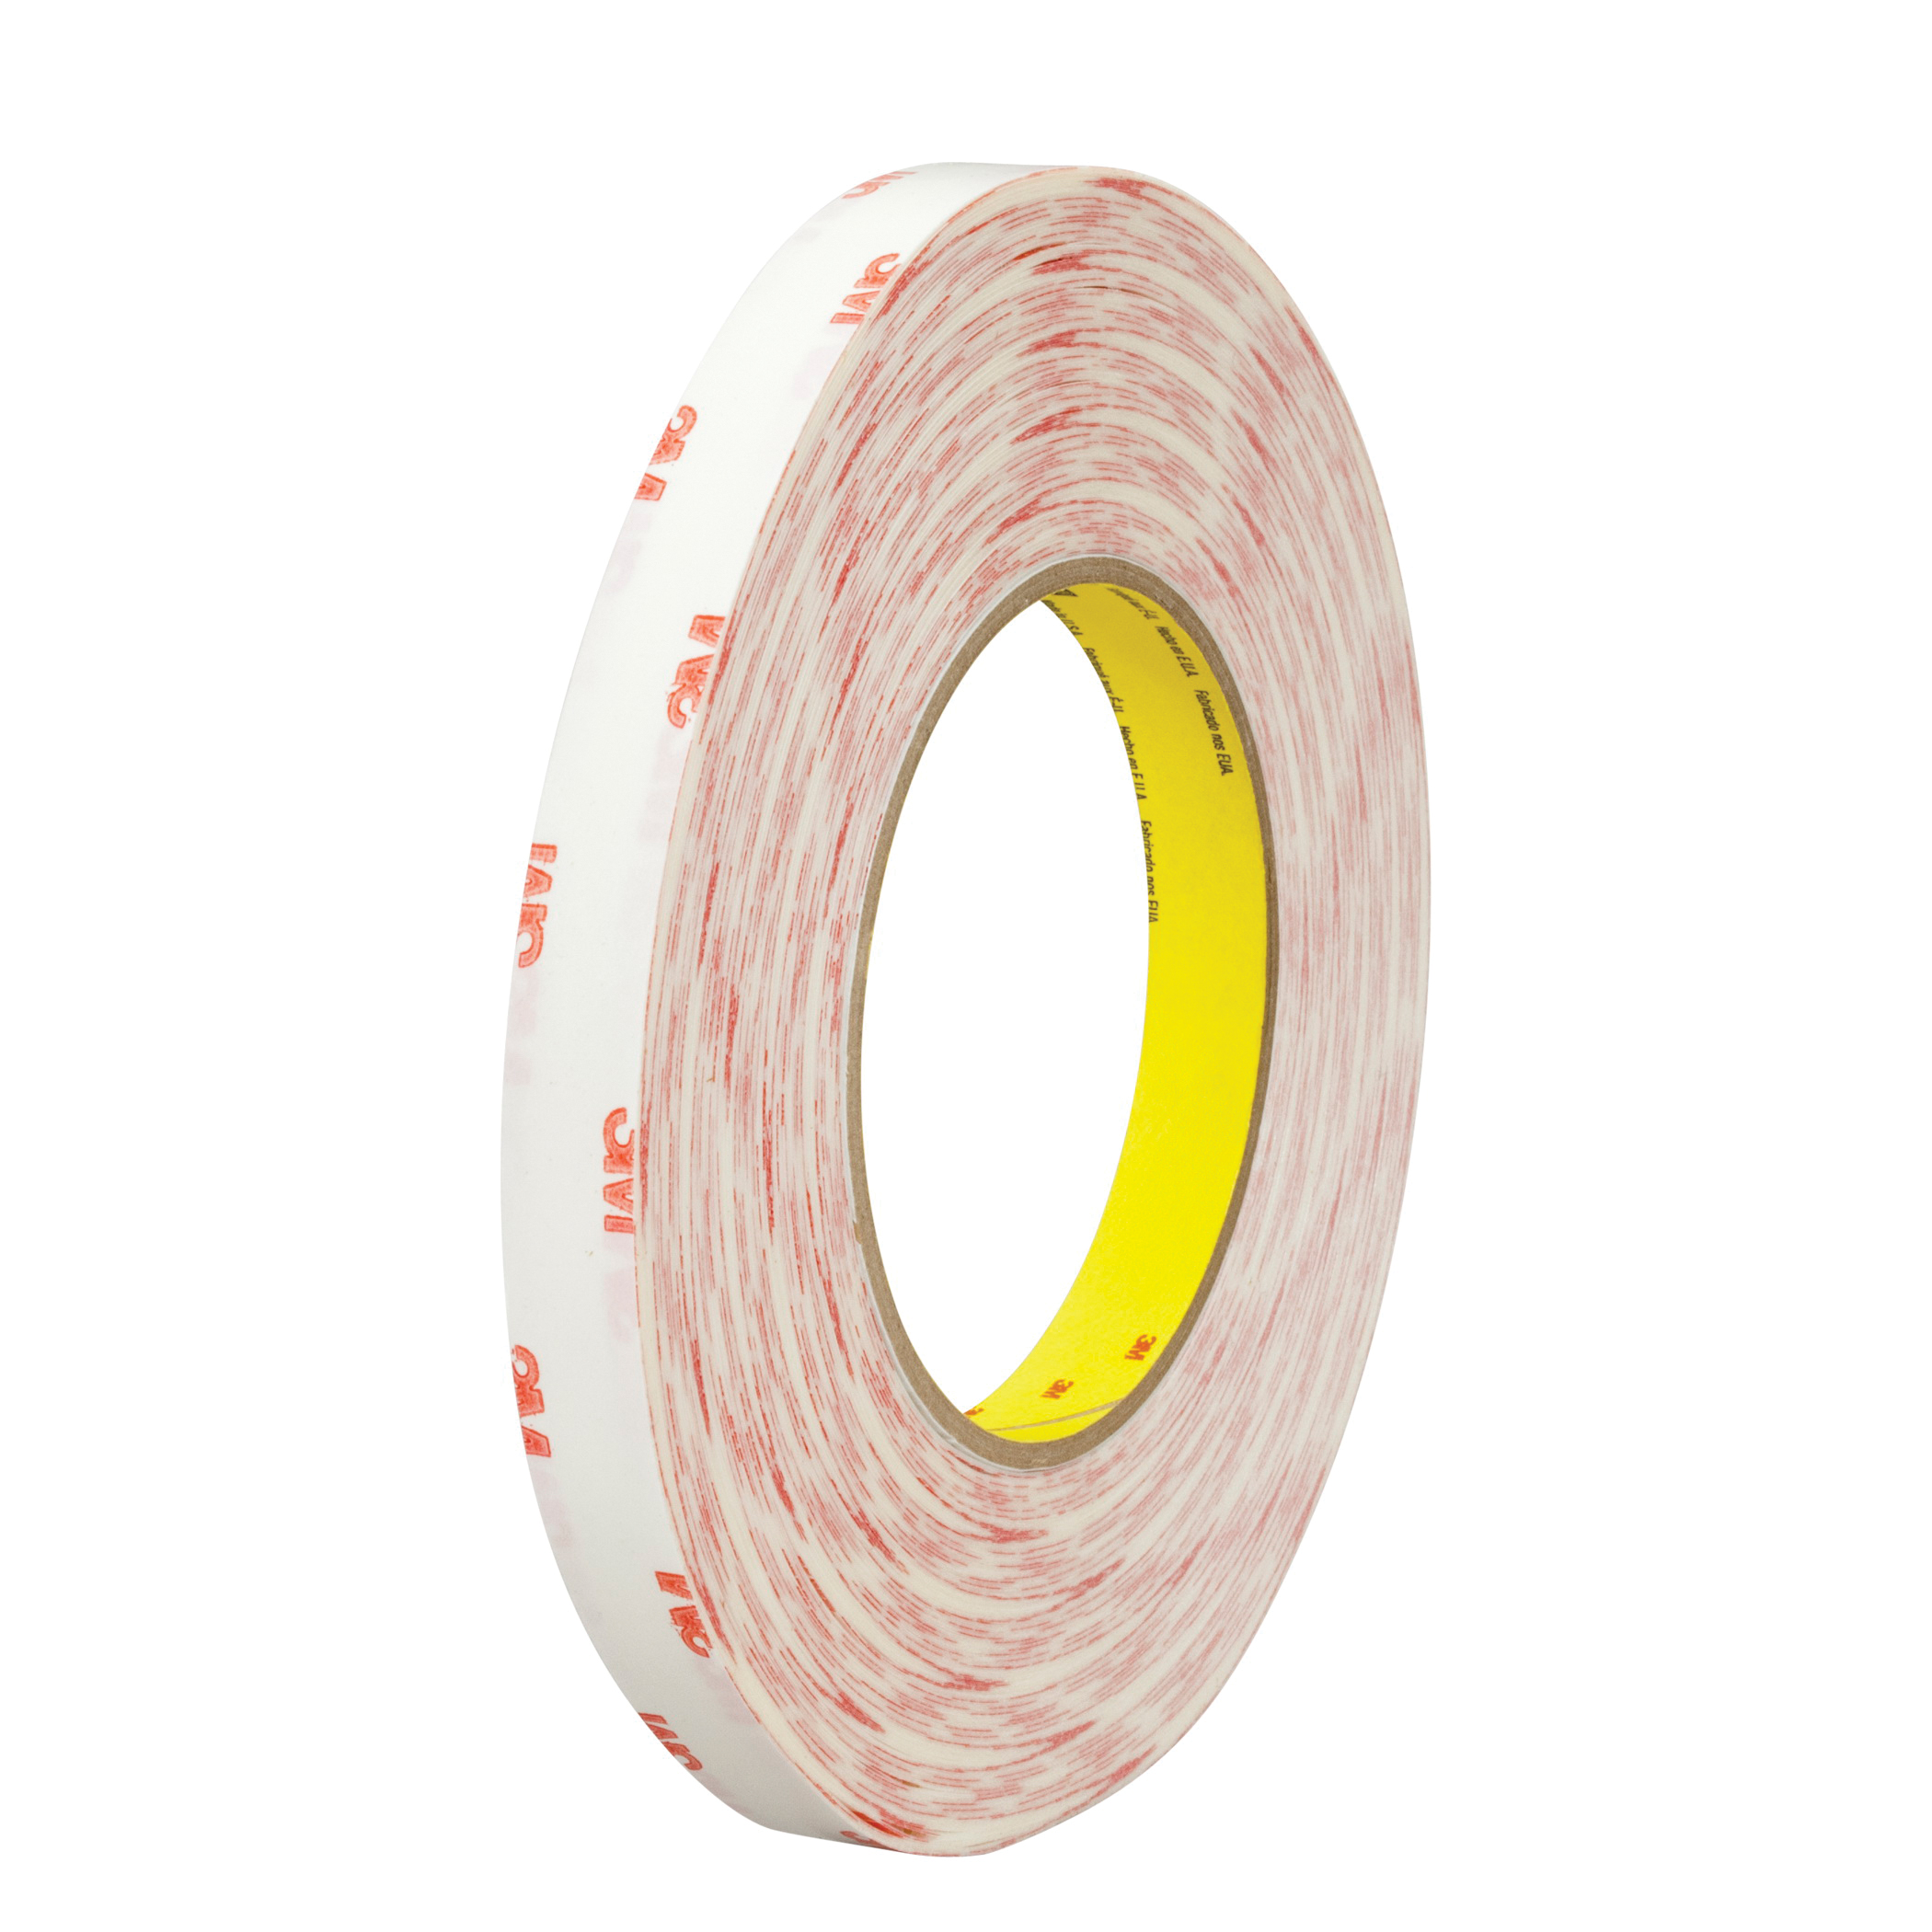 3M™ 021200-40611 Double Coated Tape, 72 yd L x 3/4 in W, 5 mil THK, 340 High Tack Acrylic Adhesive, Tissue Paper Backing, Translucent